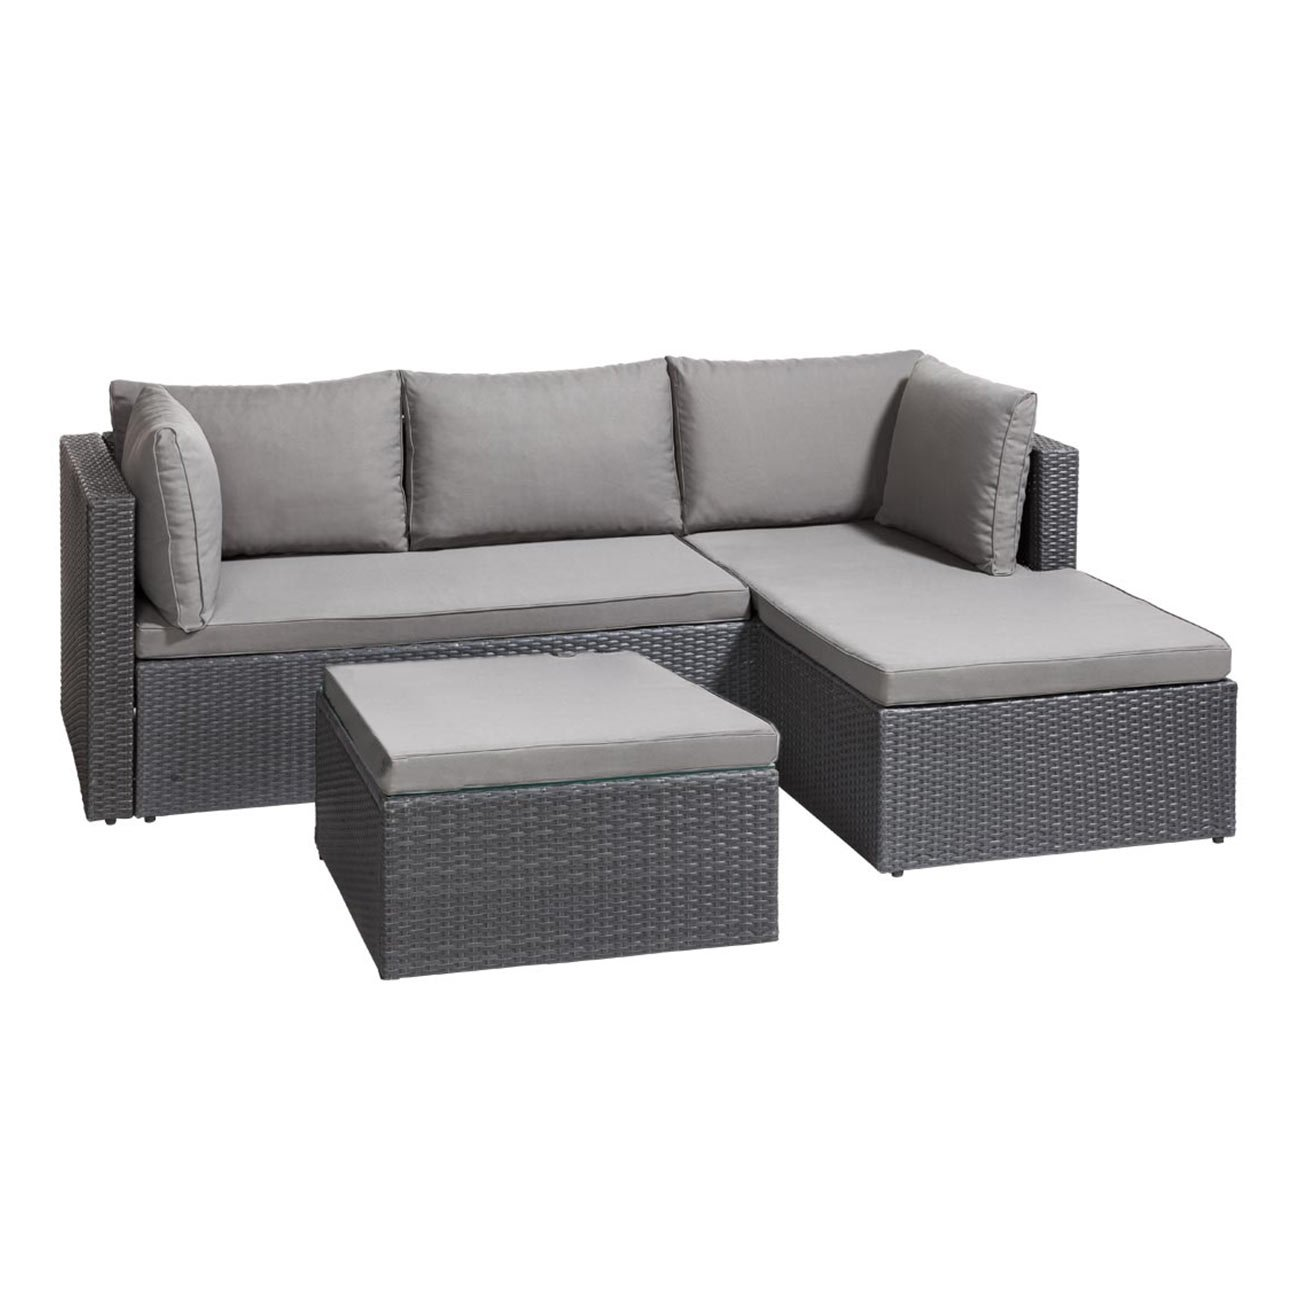 gartenlounge polyrattan outliv basel g nstiges lounge set 3tlg ecklounge grau loungem bel. Black Bedroom Furniture Sets. Home Design Ideas